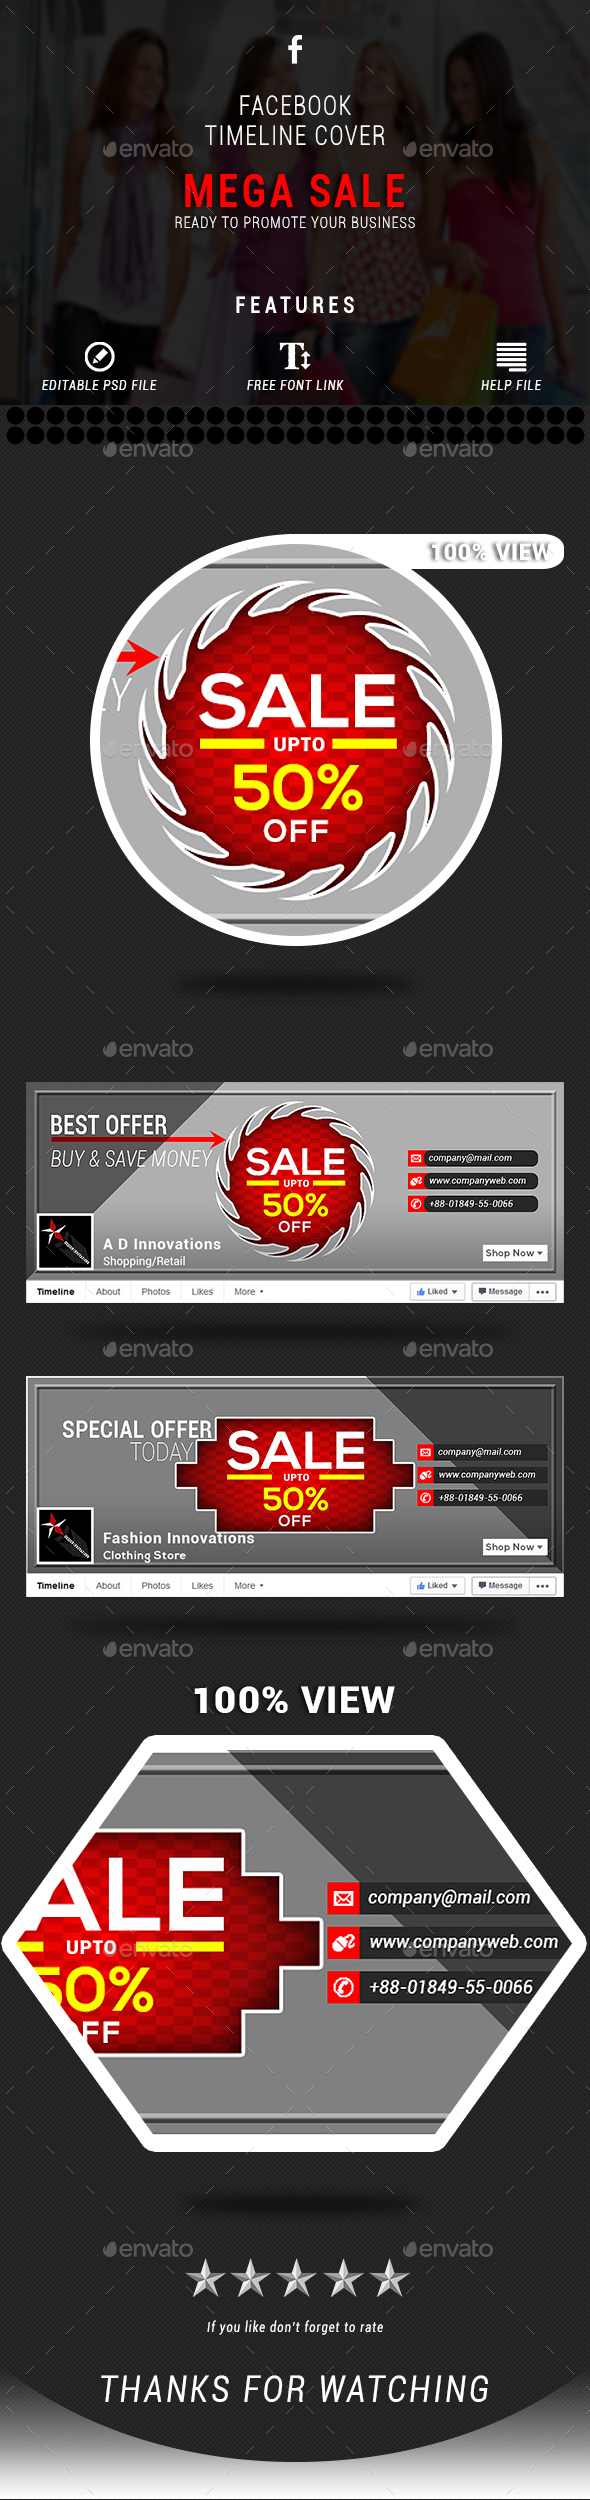 Mega Sale Timeline Cover - Facebook Timeline Covers Social Media